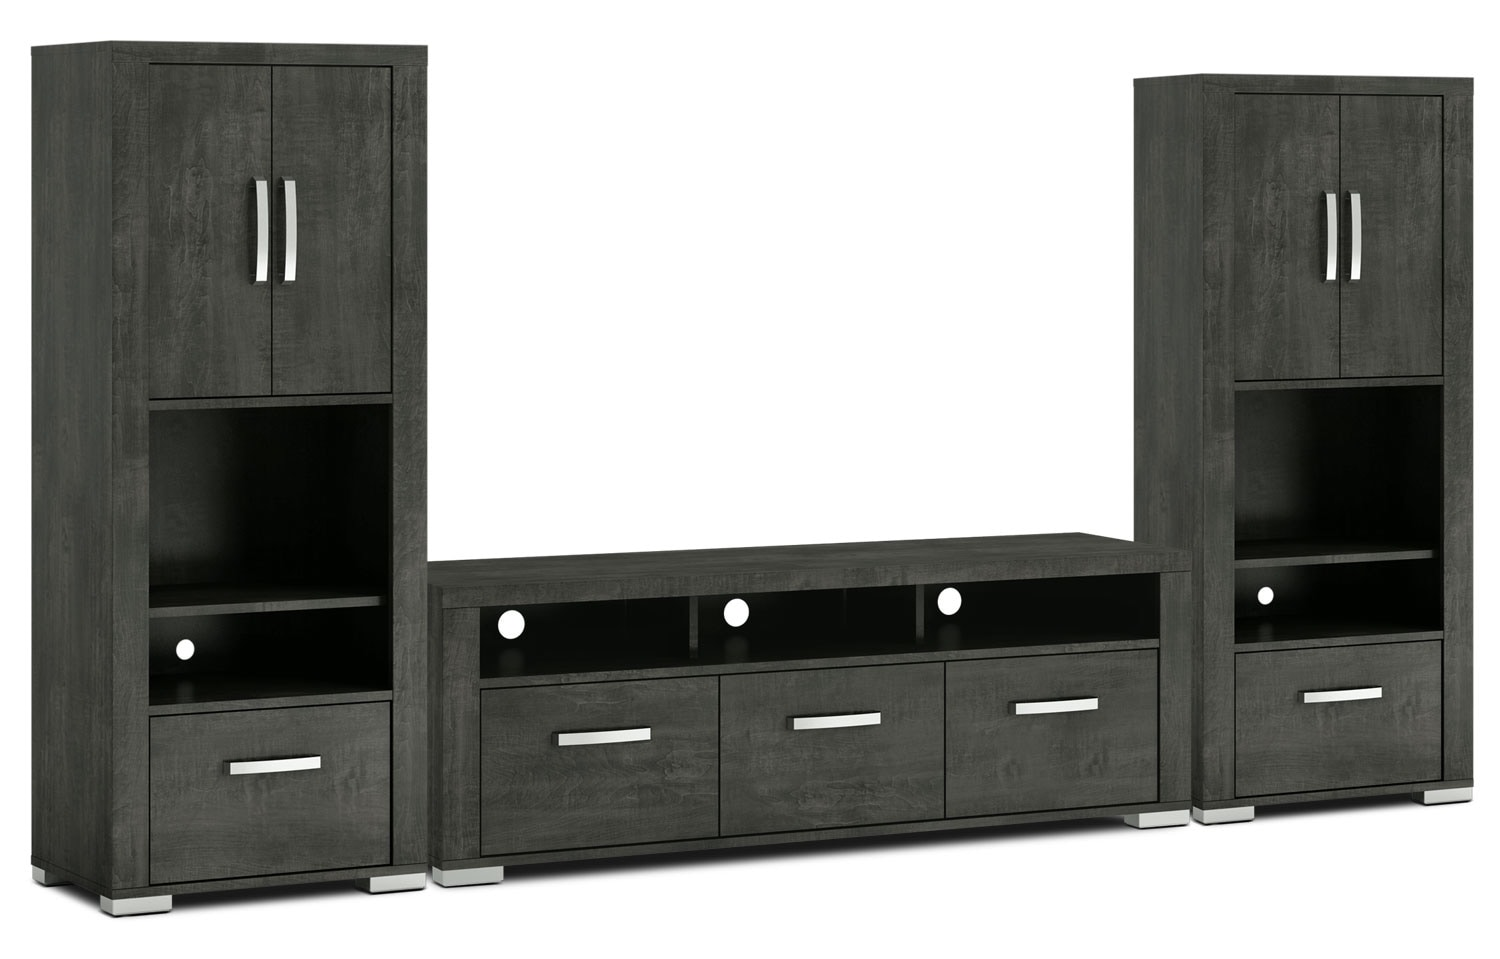 "Allendale 3-Piece Entertainment Centre with 64"" TV Opening and Closed Piers - Anthracite"